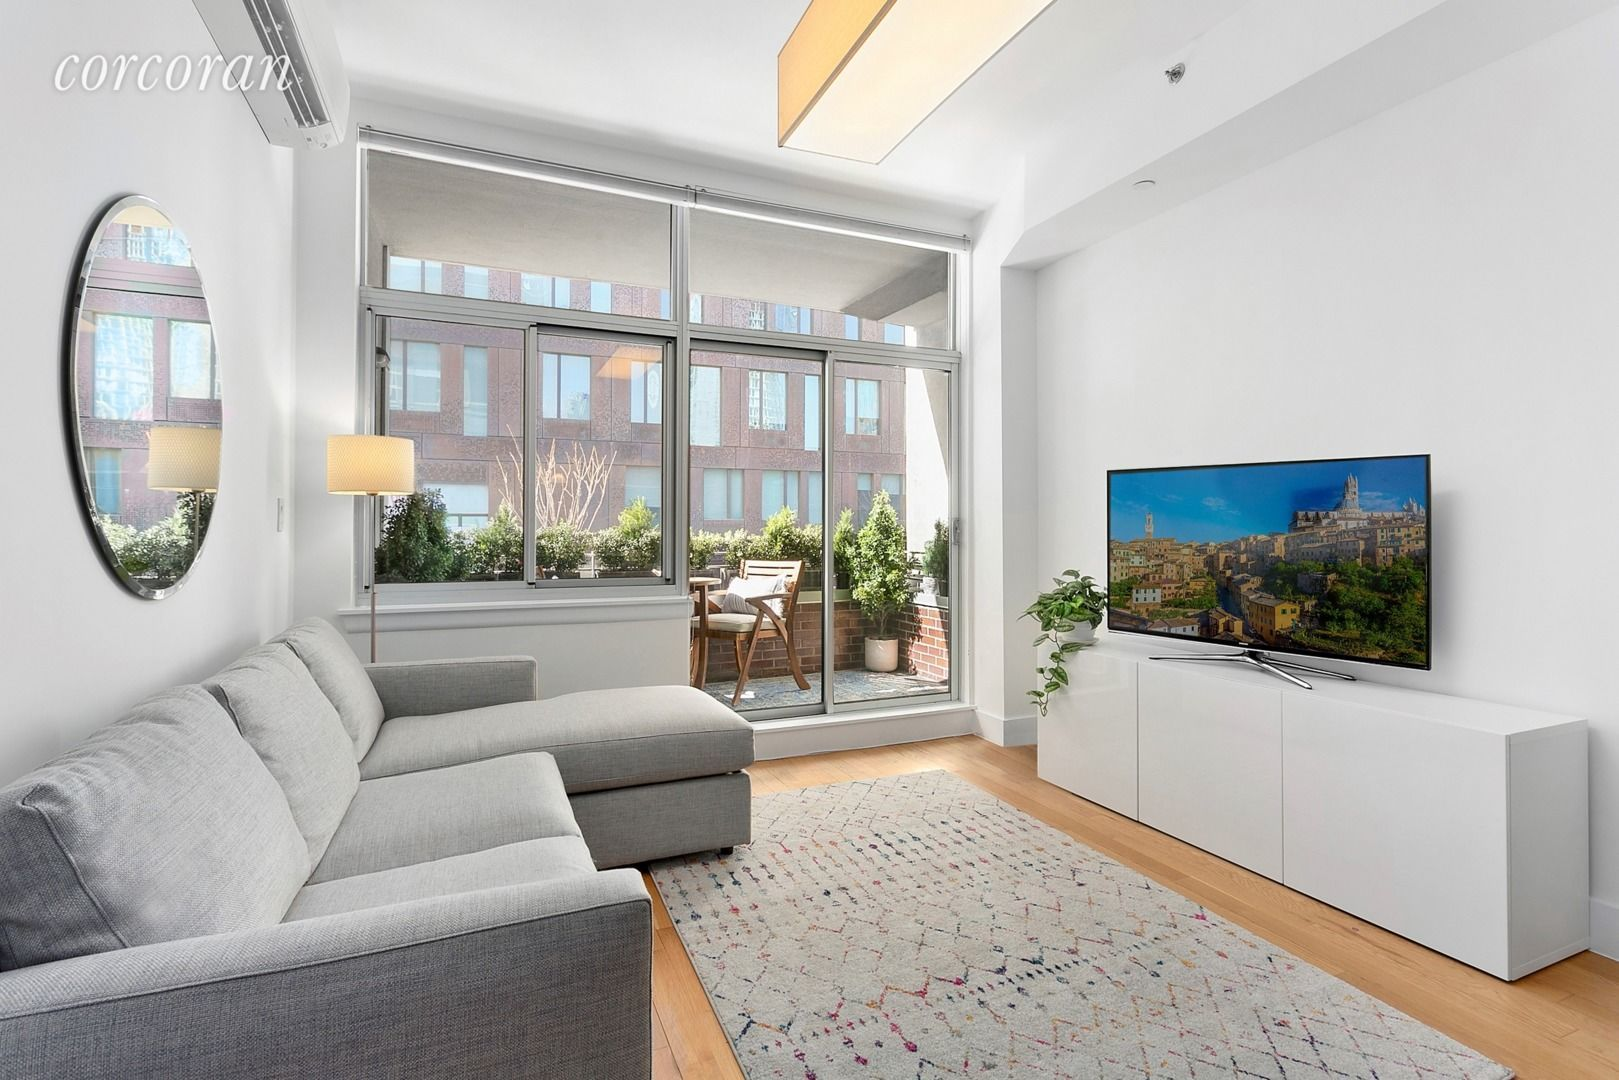 Apartment for sale at 29 South 3rd Street, Apt 1D